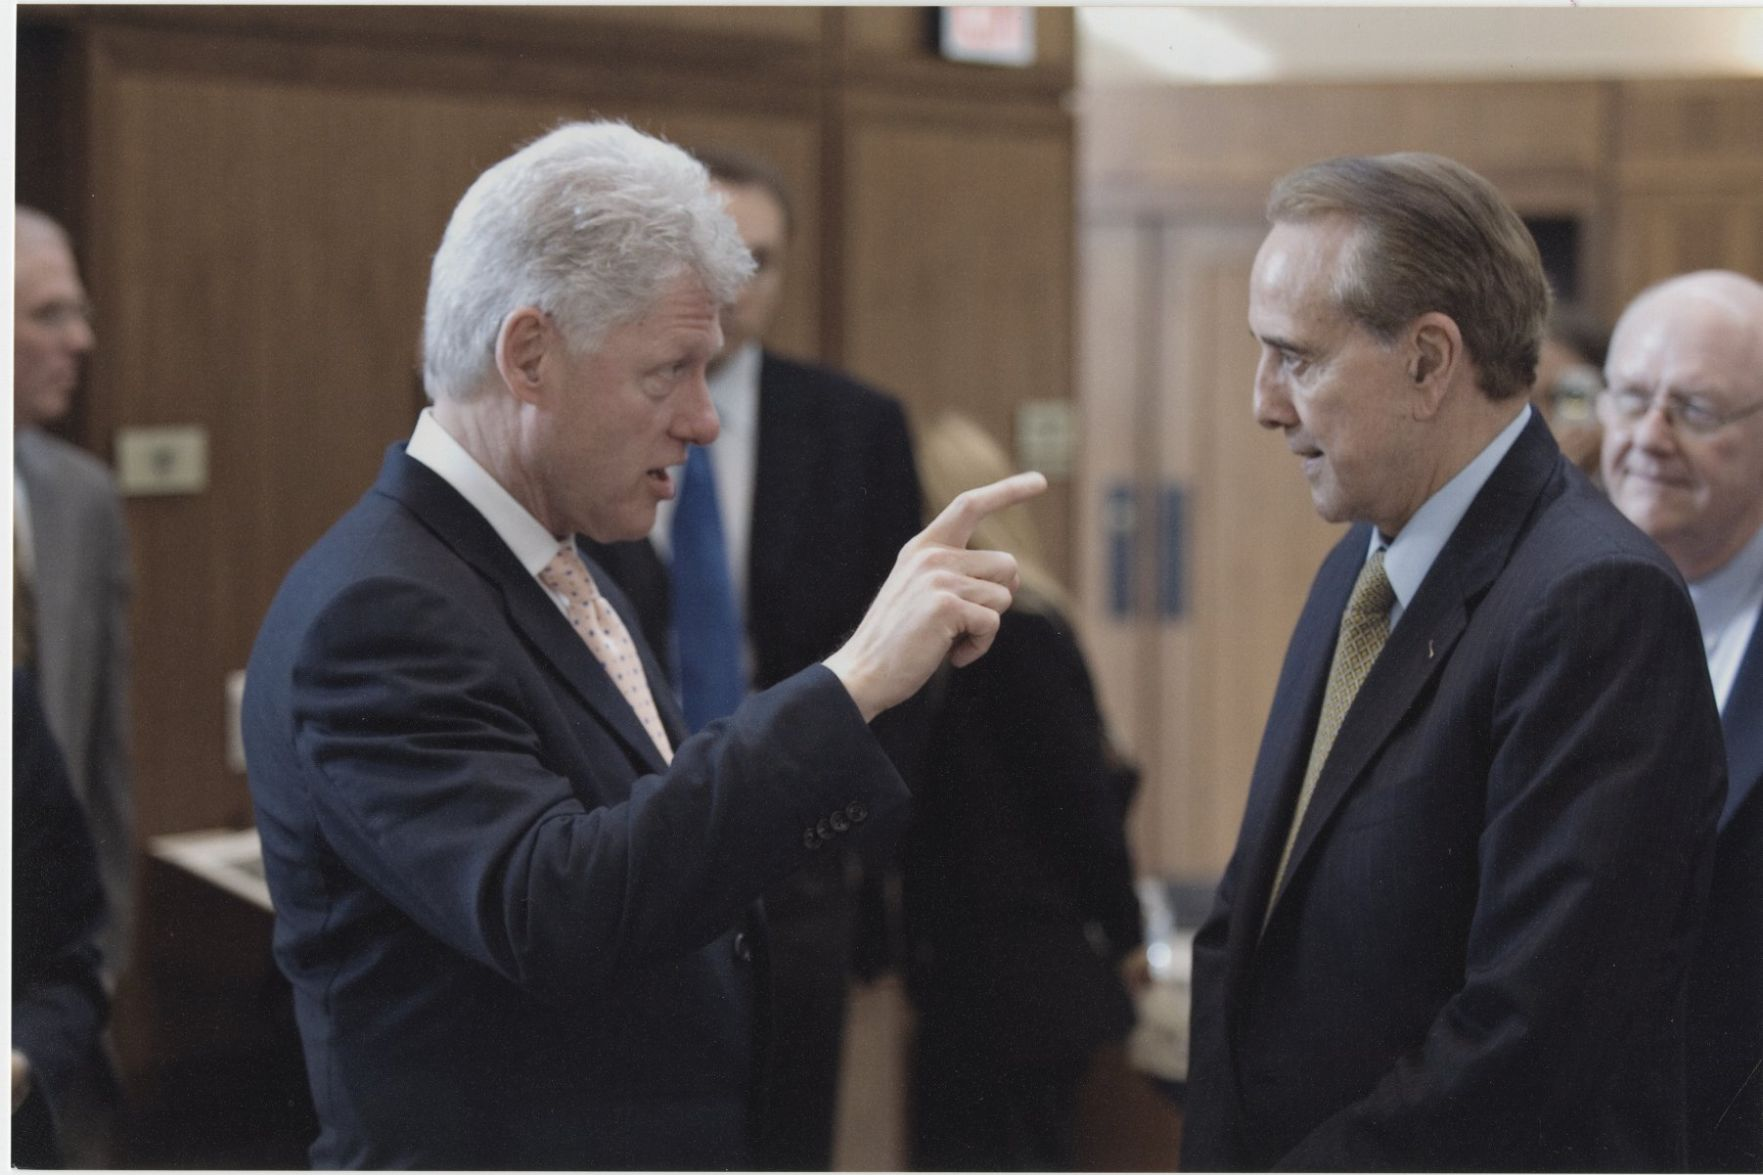 impeachment lingers under bill clintons presidency after the scandal History does repeat itself on november 5, the american people re-elected bill clinton to a second term in the face of allegations of serious abuses of power by the president and members of his administration.